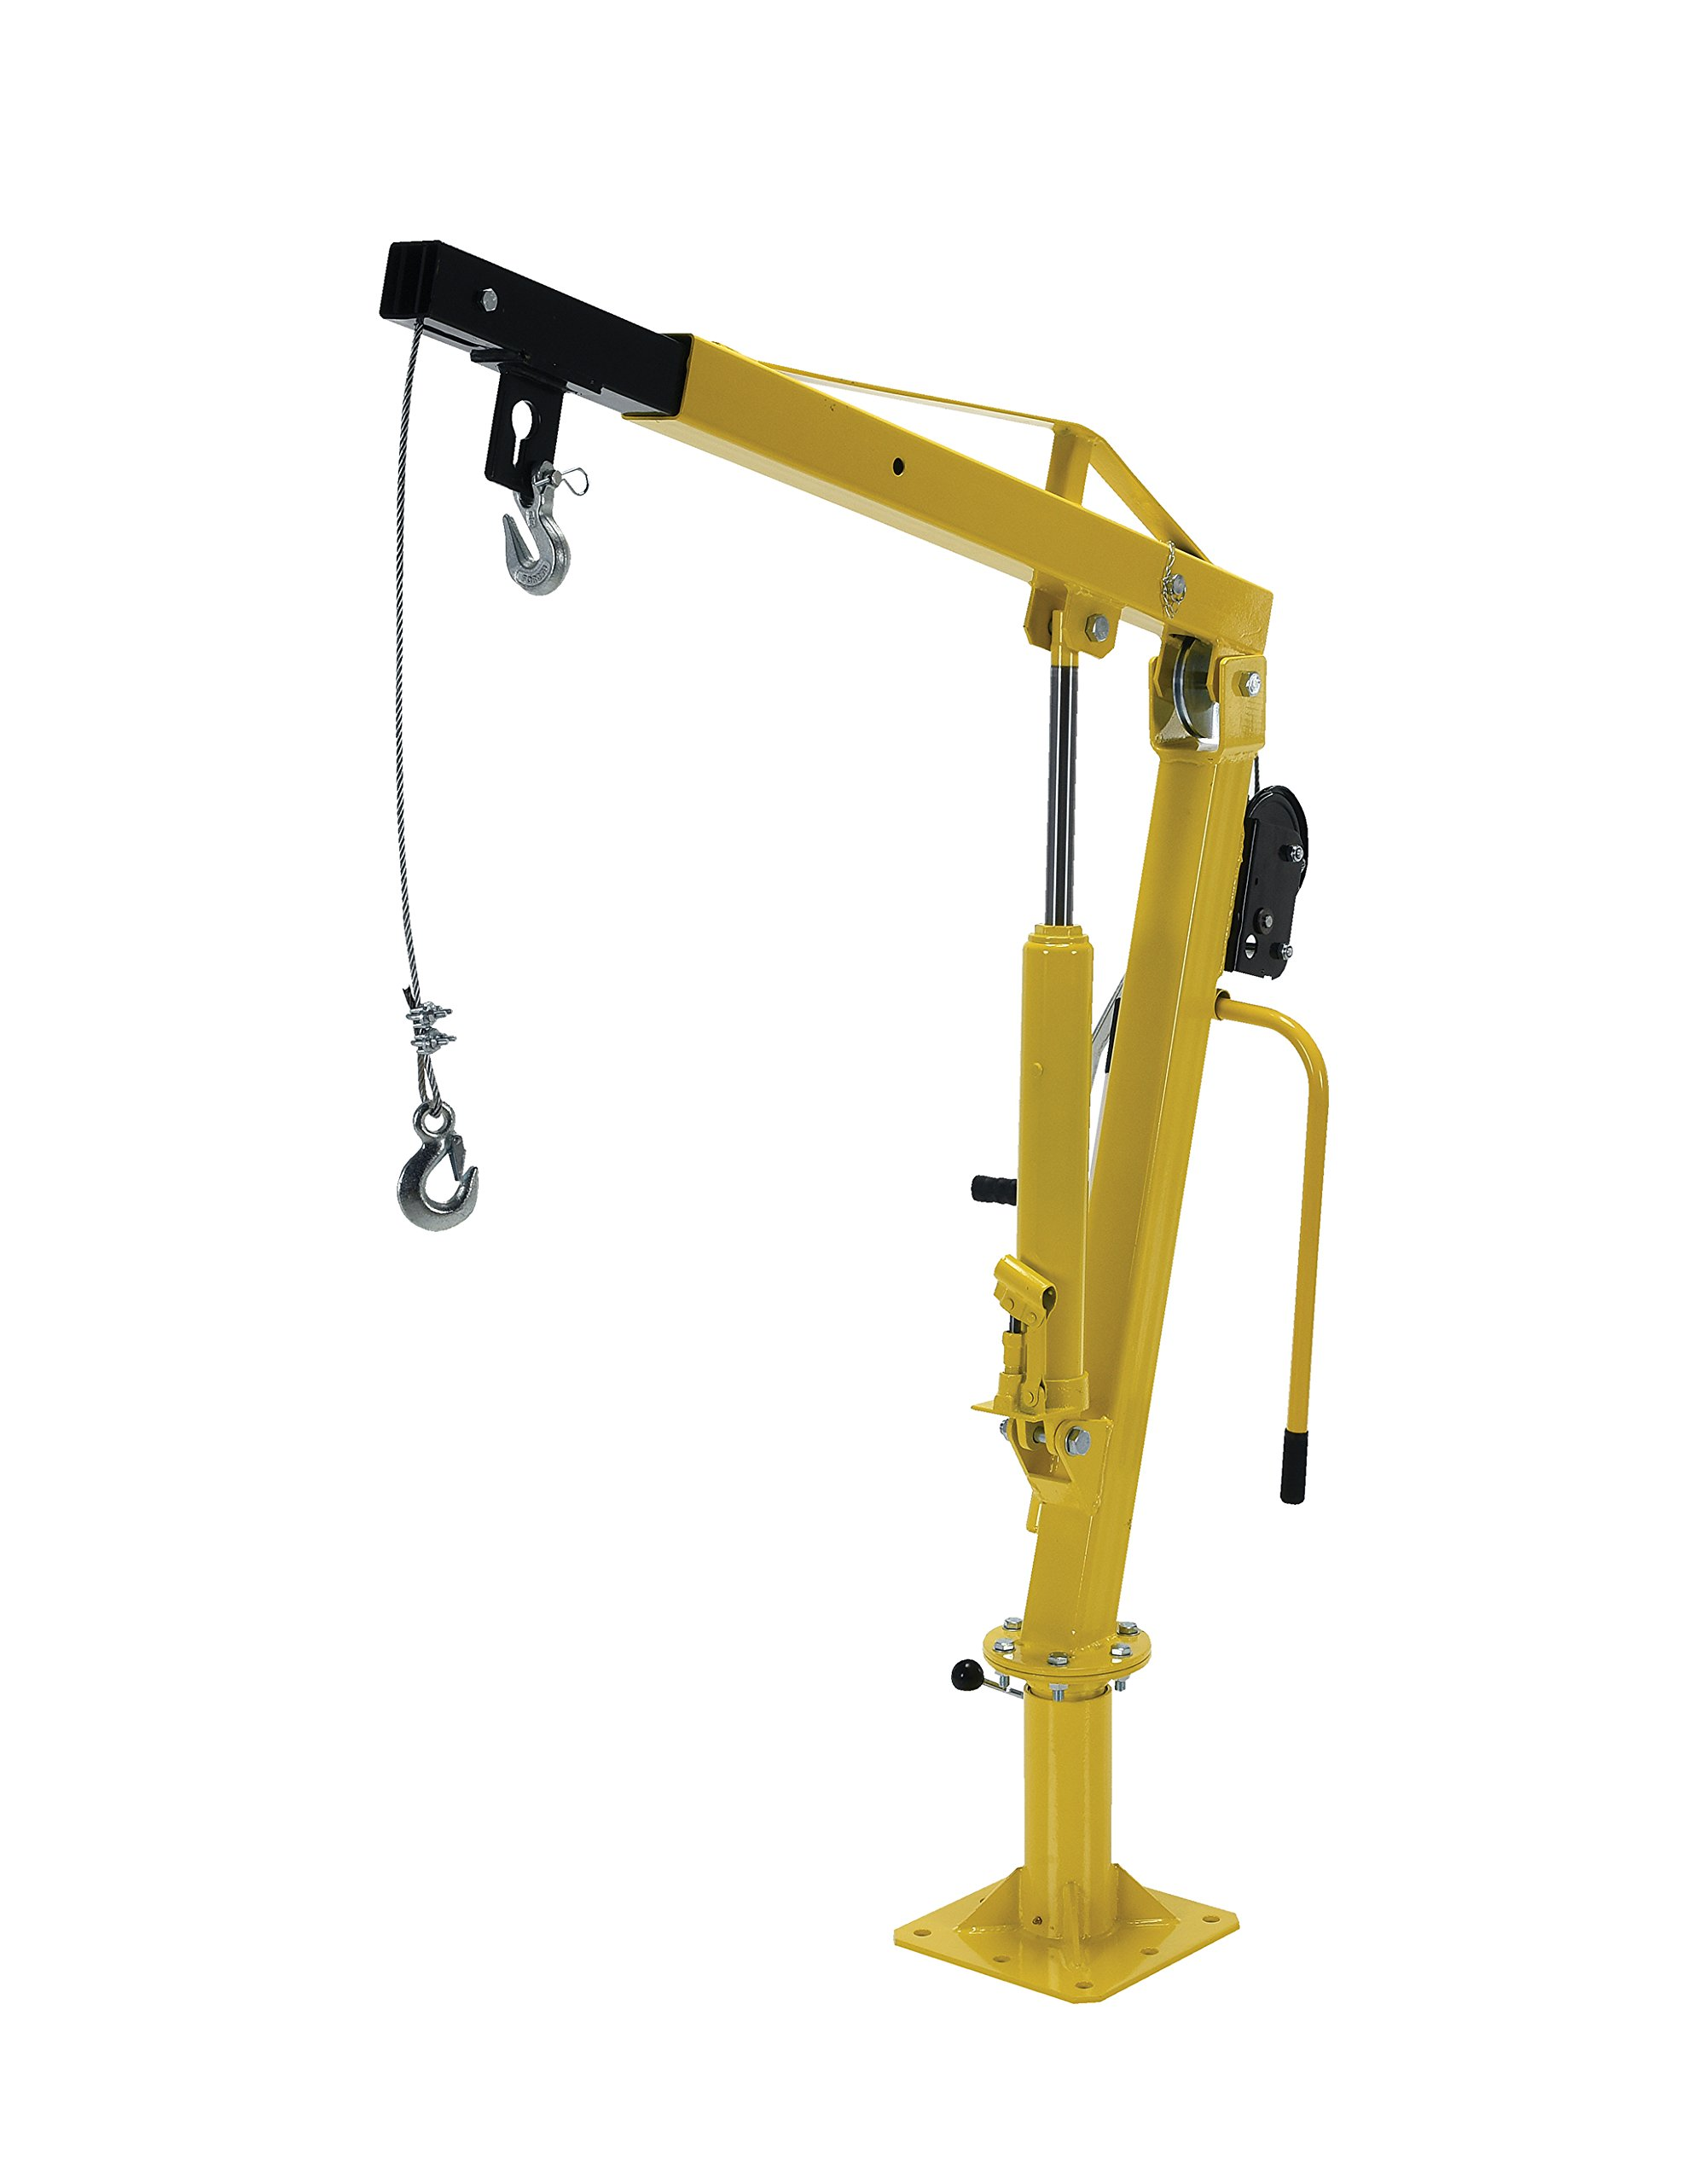 Vestil WTJ-2 Winch Operated Truck Jib Crane, Welded Steel, 1000 lbs Retracted Capacity, 56'' Overall Height, Yellow